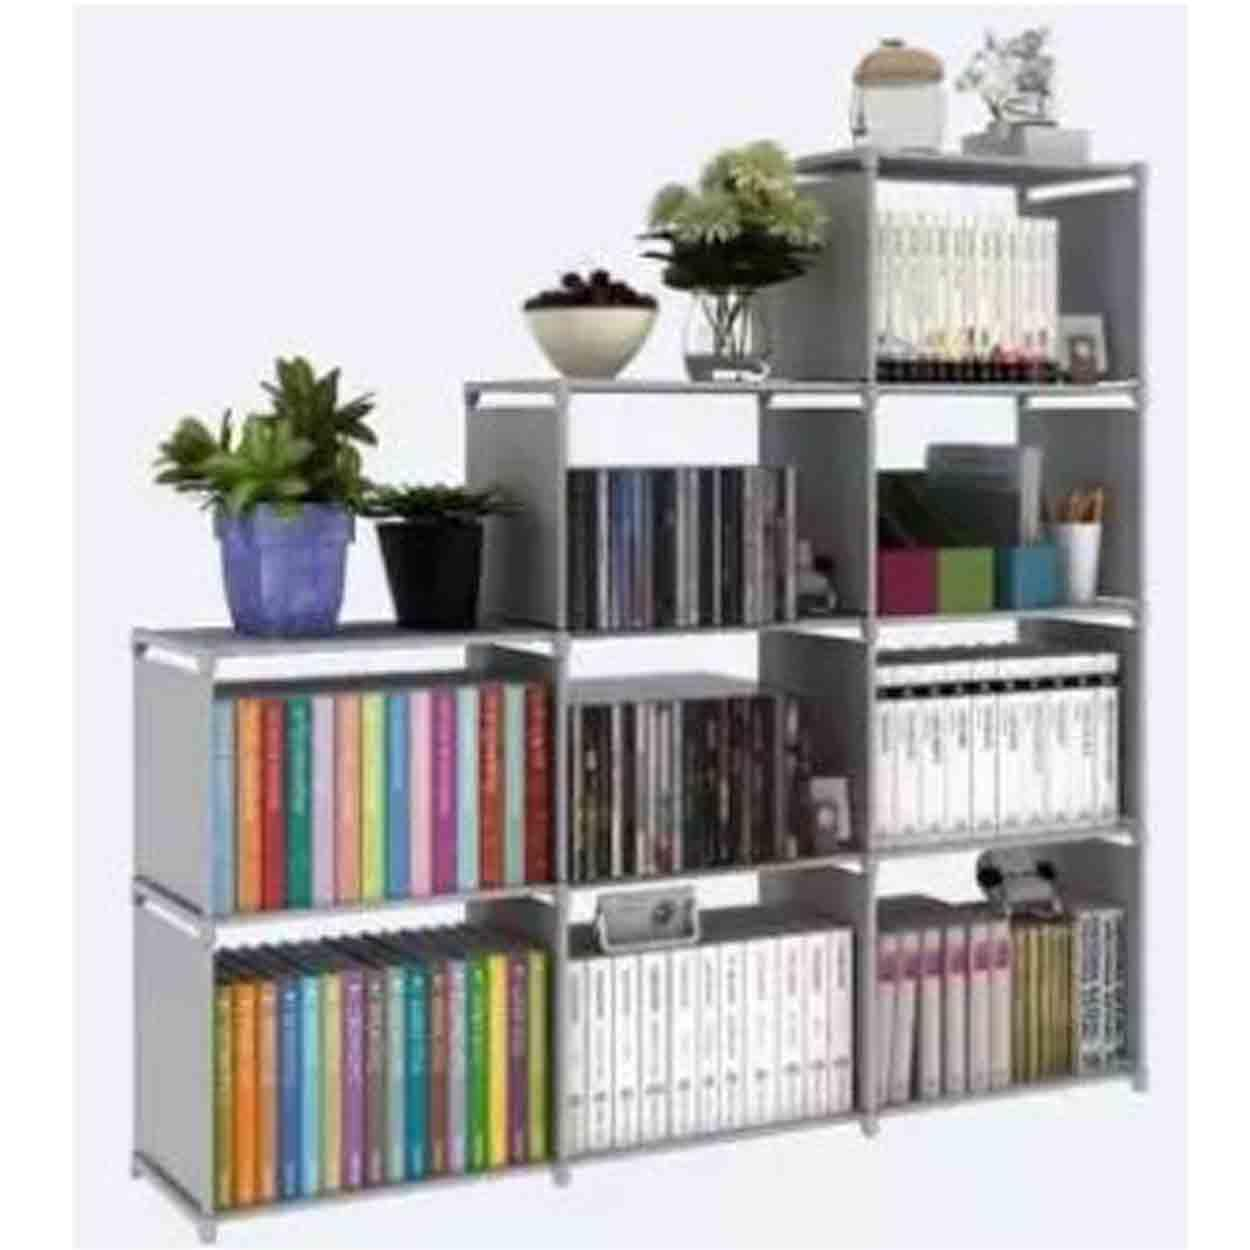 living room furniture for sale storage ideas prices brands review quality home adjustable bookcase bookshelf with 9 book shelves grey